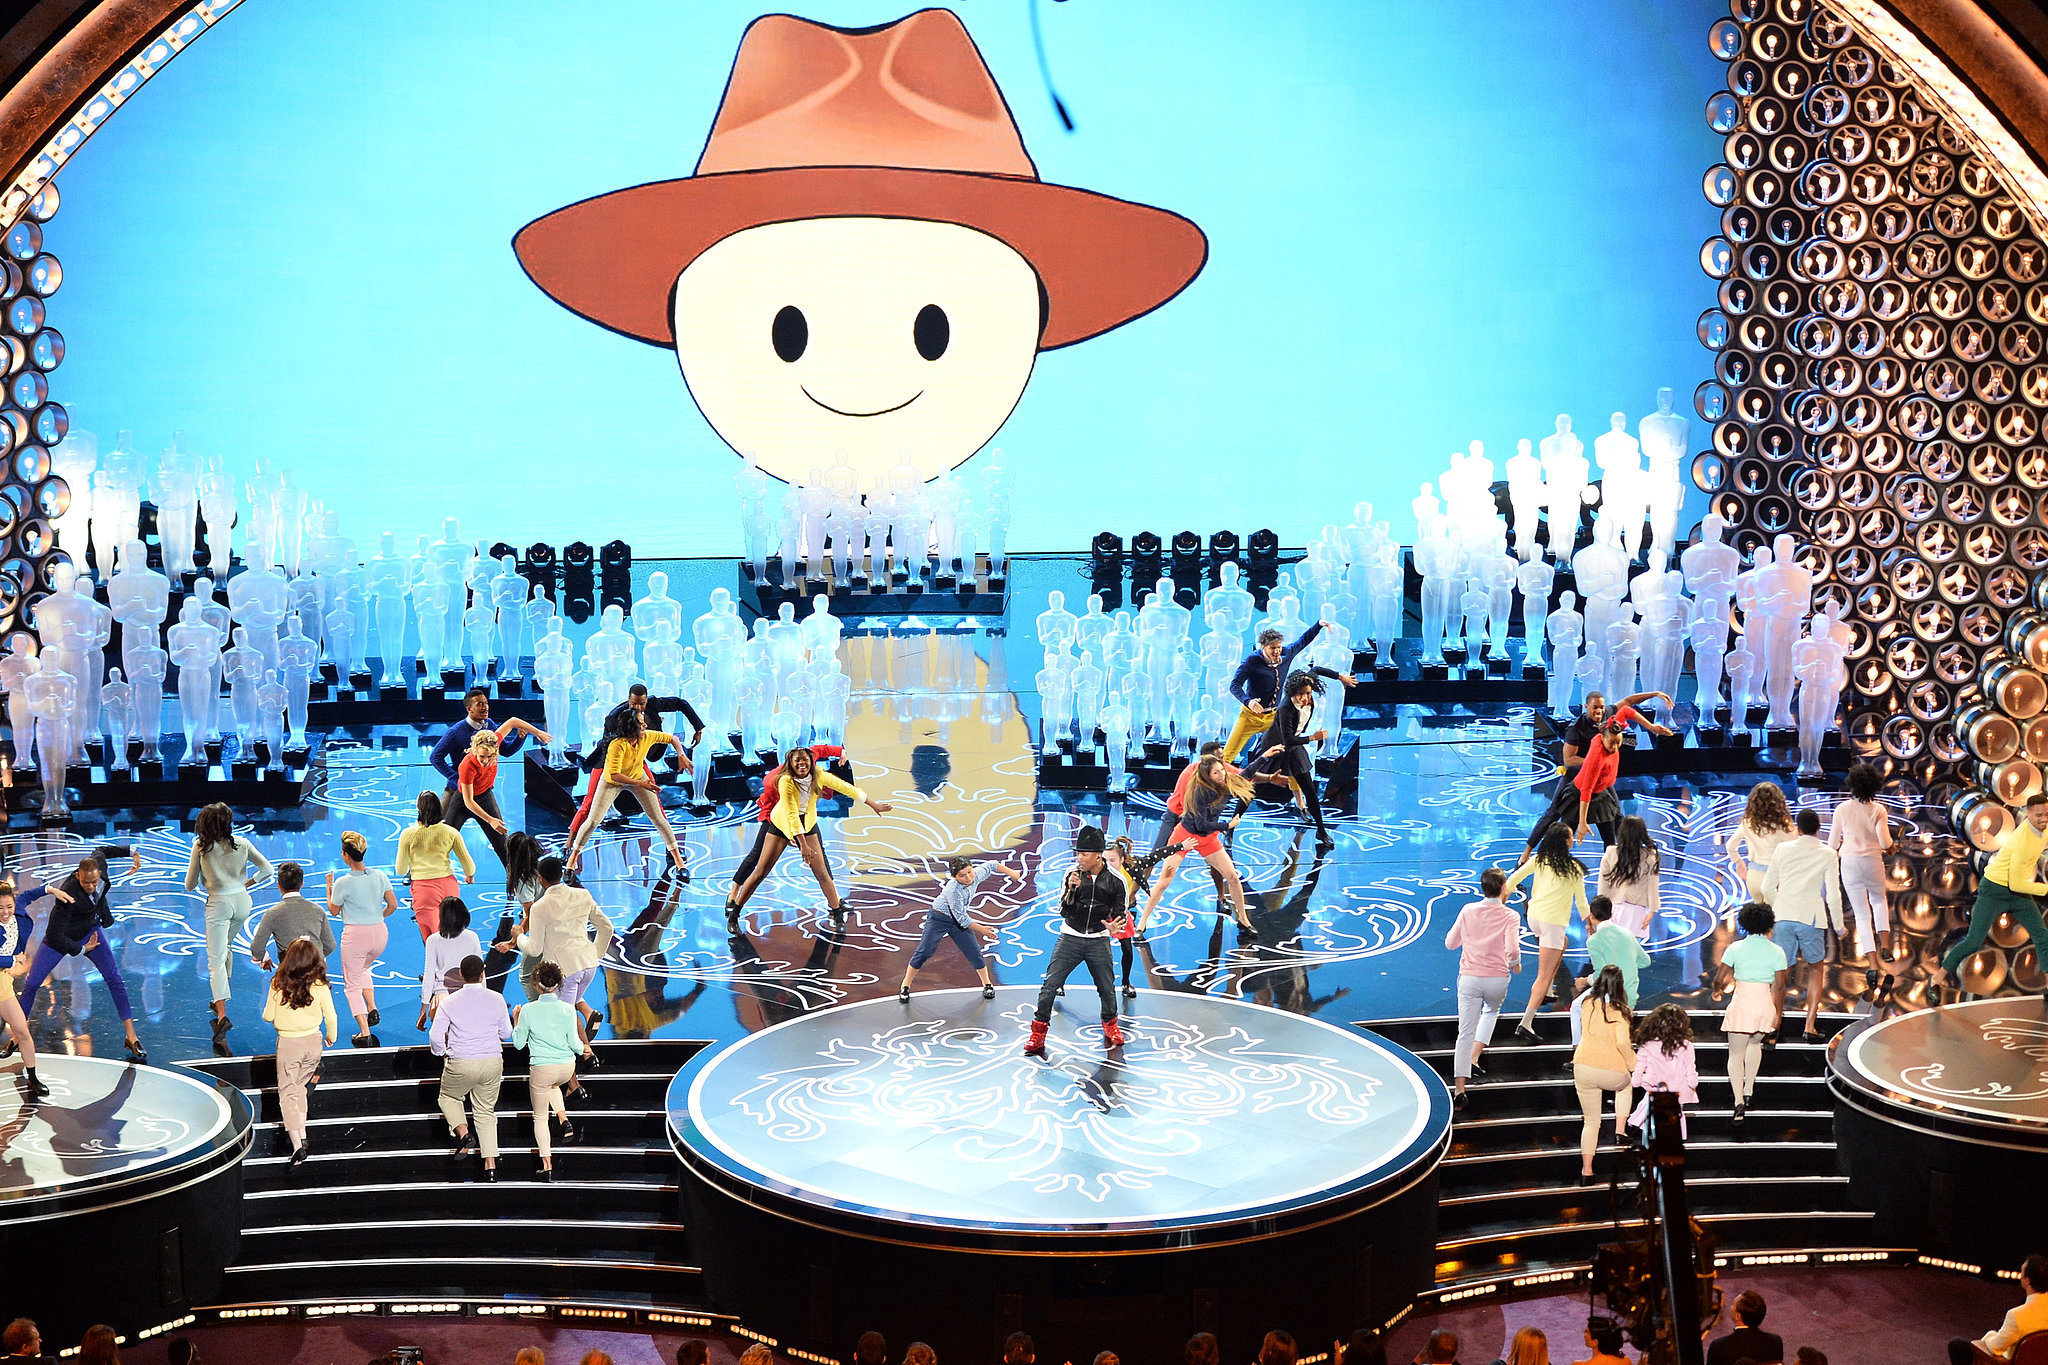 Pharrell's giant hat got its own cartoon version during his performance.